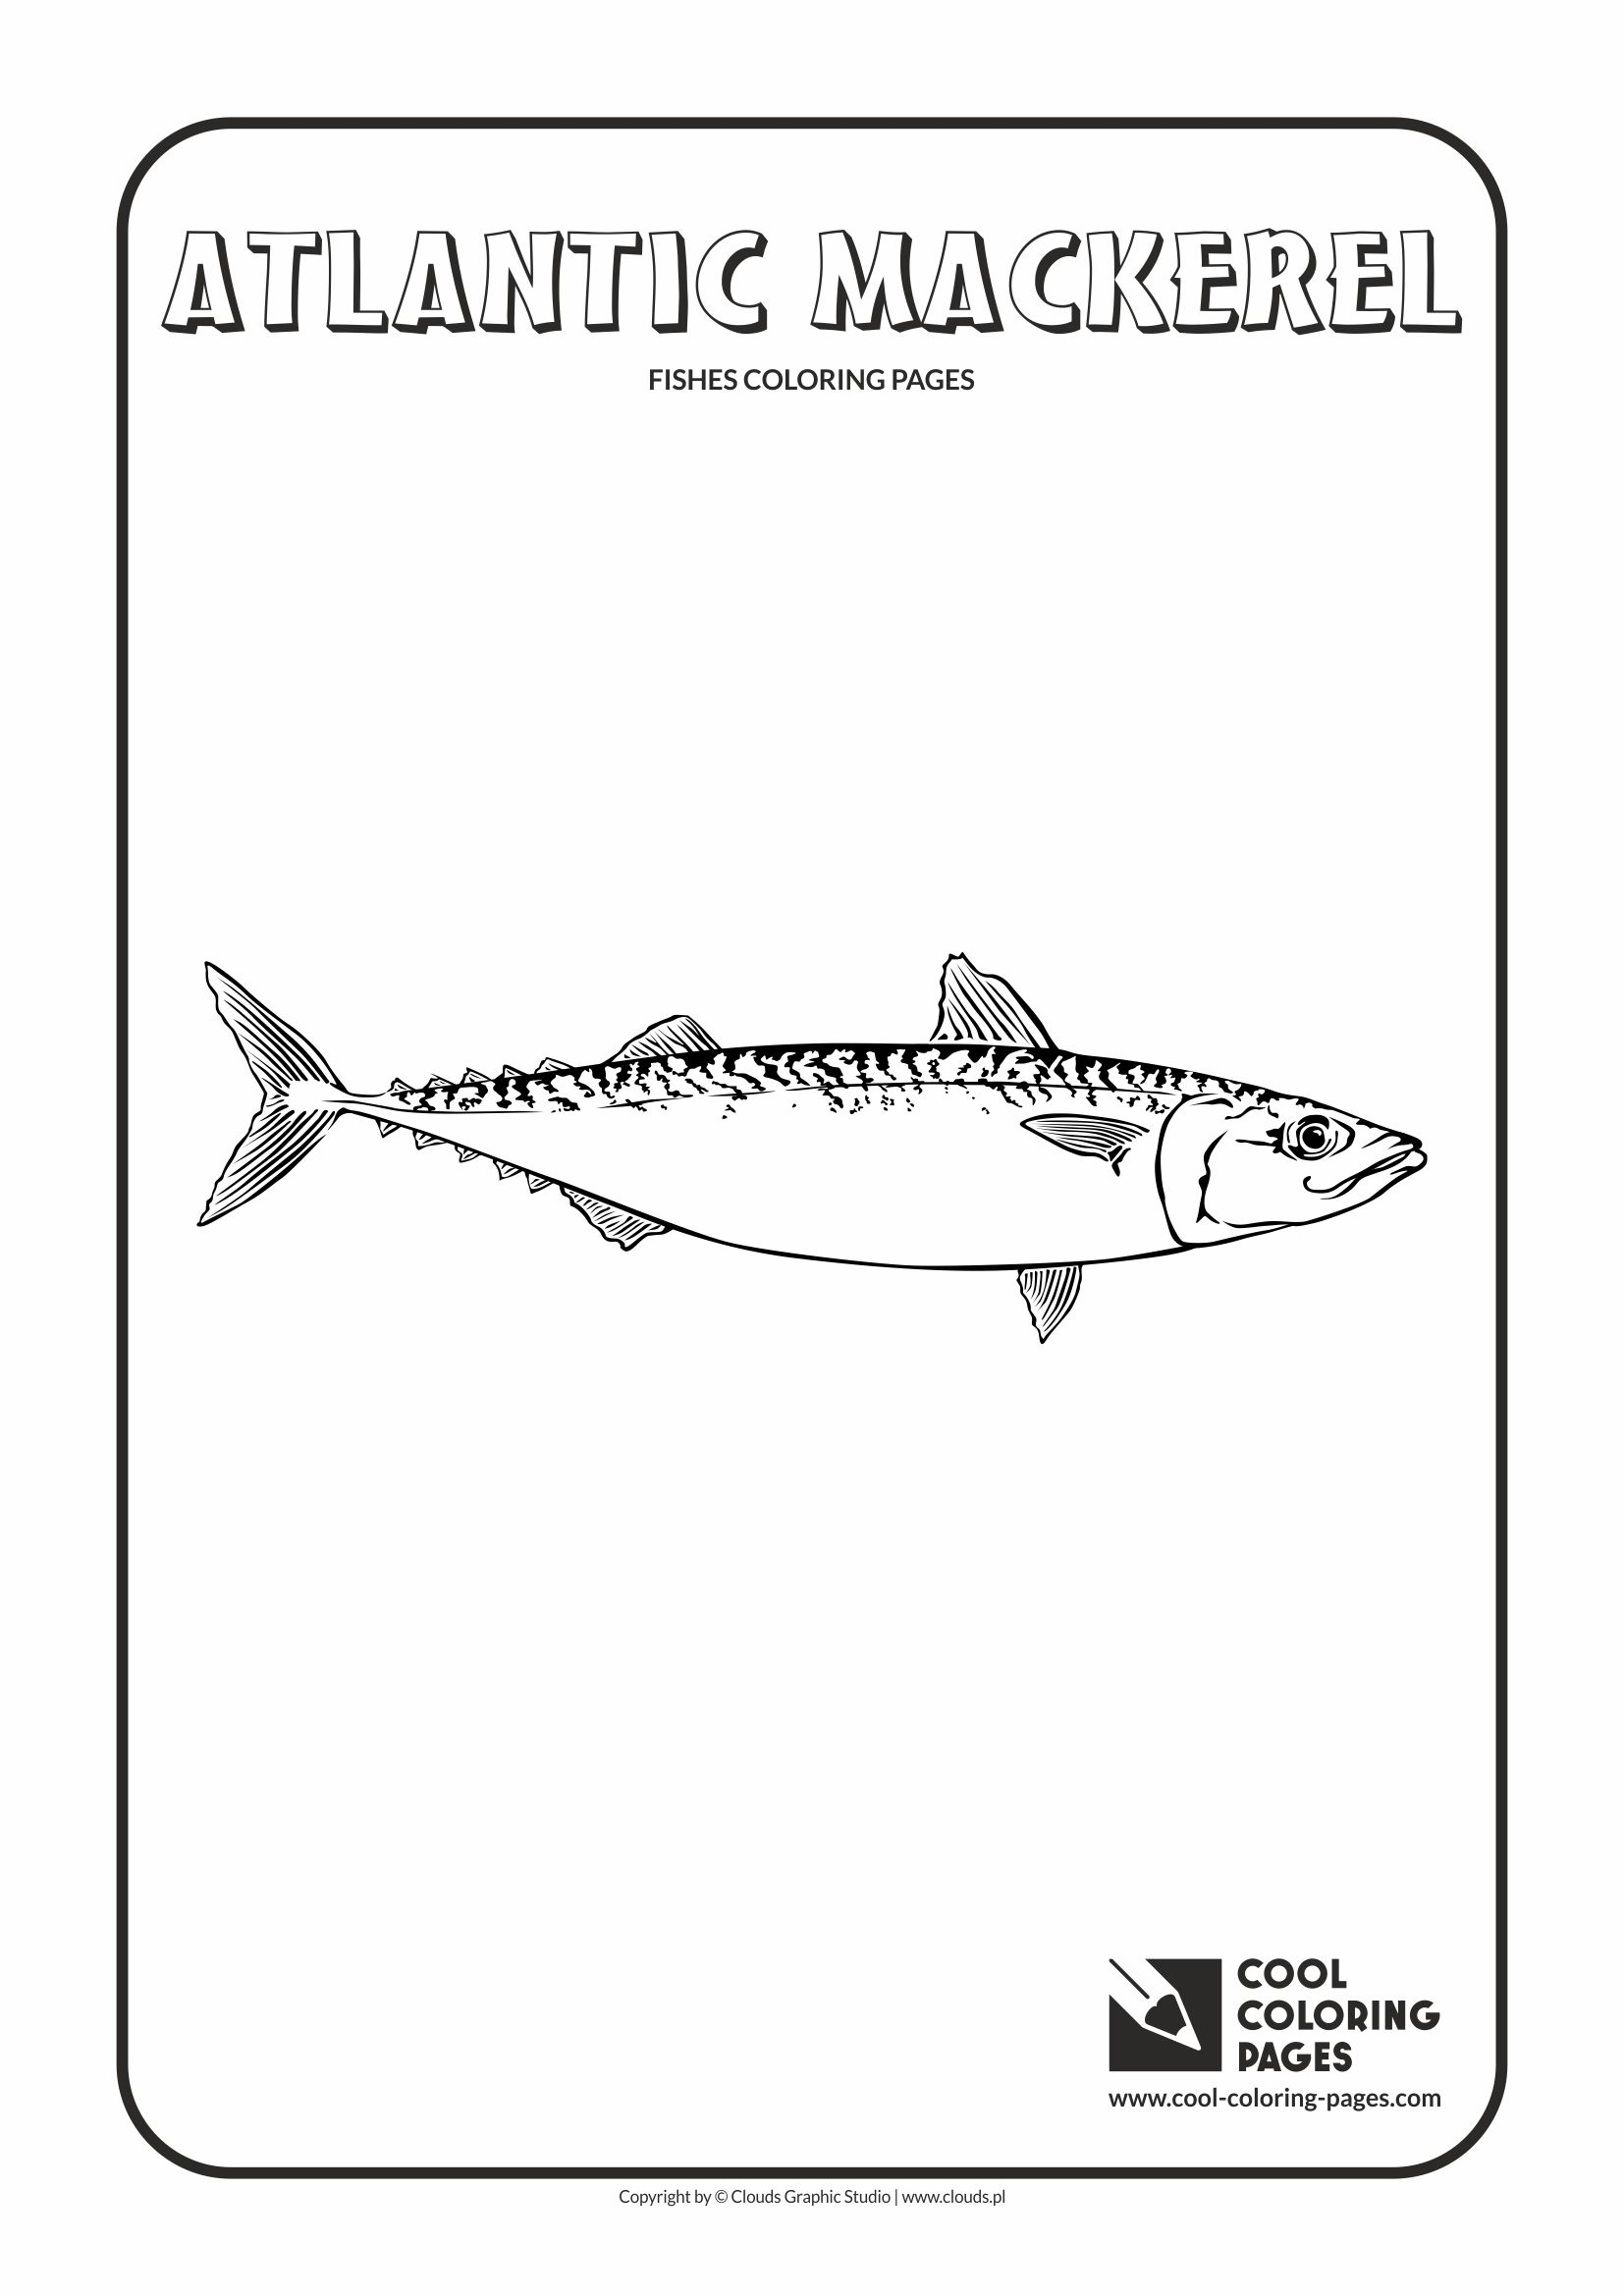 Cool Coloring Pages - Animals / Atlantic mackerel / Coloring page with atlantic mackerel